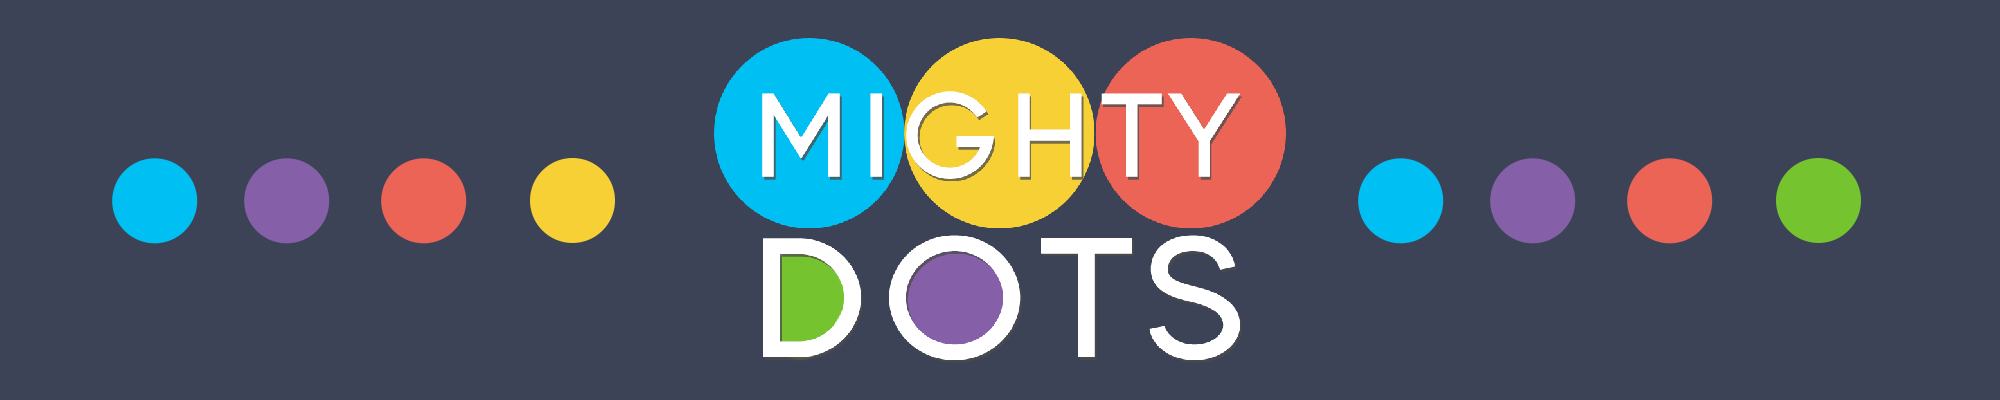 MiGHTY DOTS